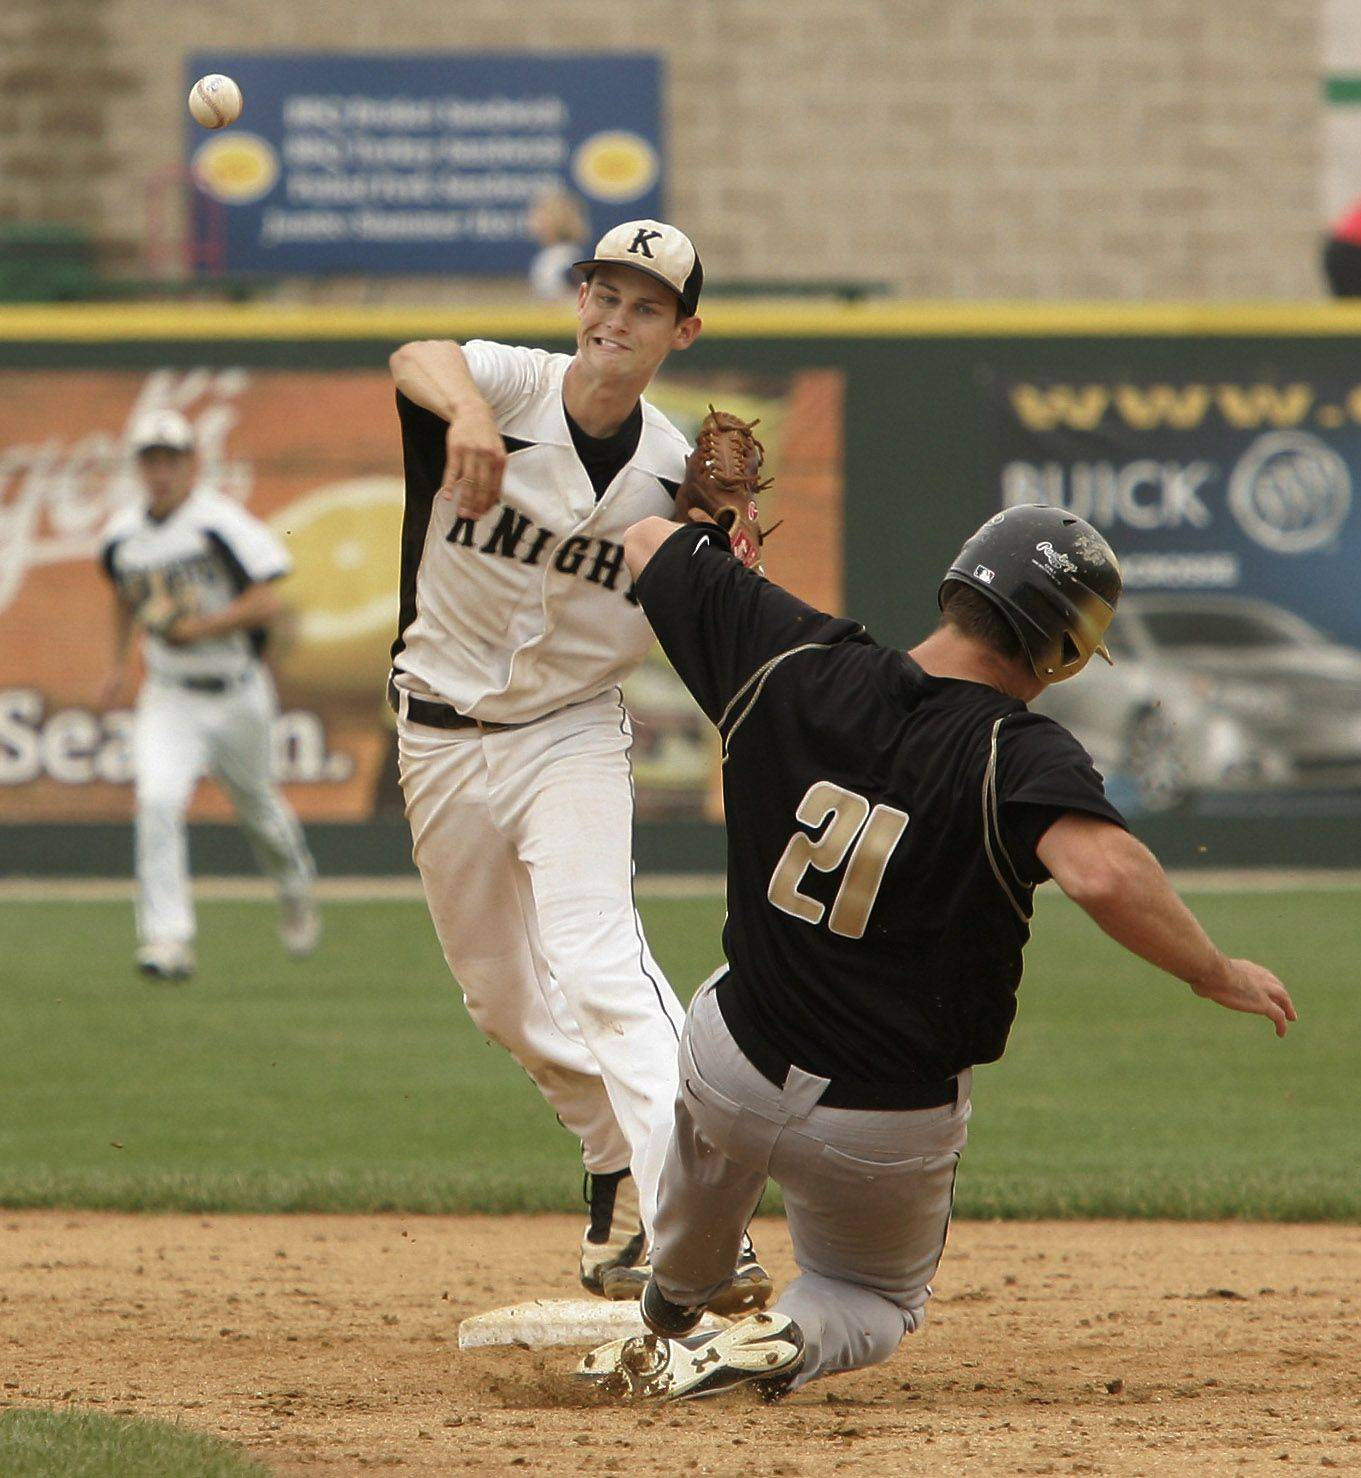 Kaneland shortstop Brian Dixon turns the double play in the seventh inning for the final outs of the game as Oak Forest runner Tim Barry slides into second during the Kaneland vs. Oak Forest boys high school baseball game Saturday in the Class 3A state finals at Silver Cross Field in Joliet. Kaneland defeated Oak Forest 11-3 to win the state championship.